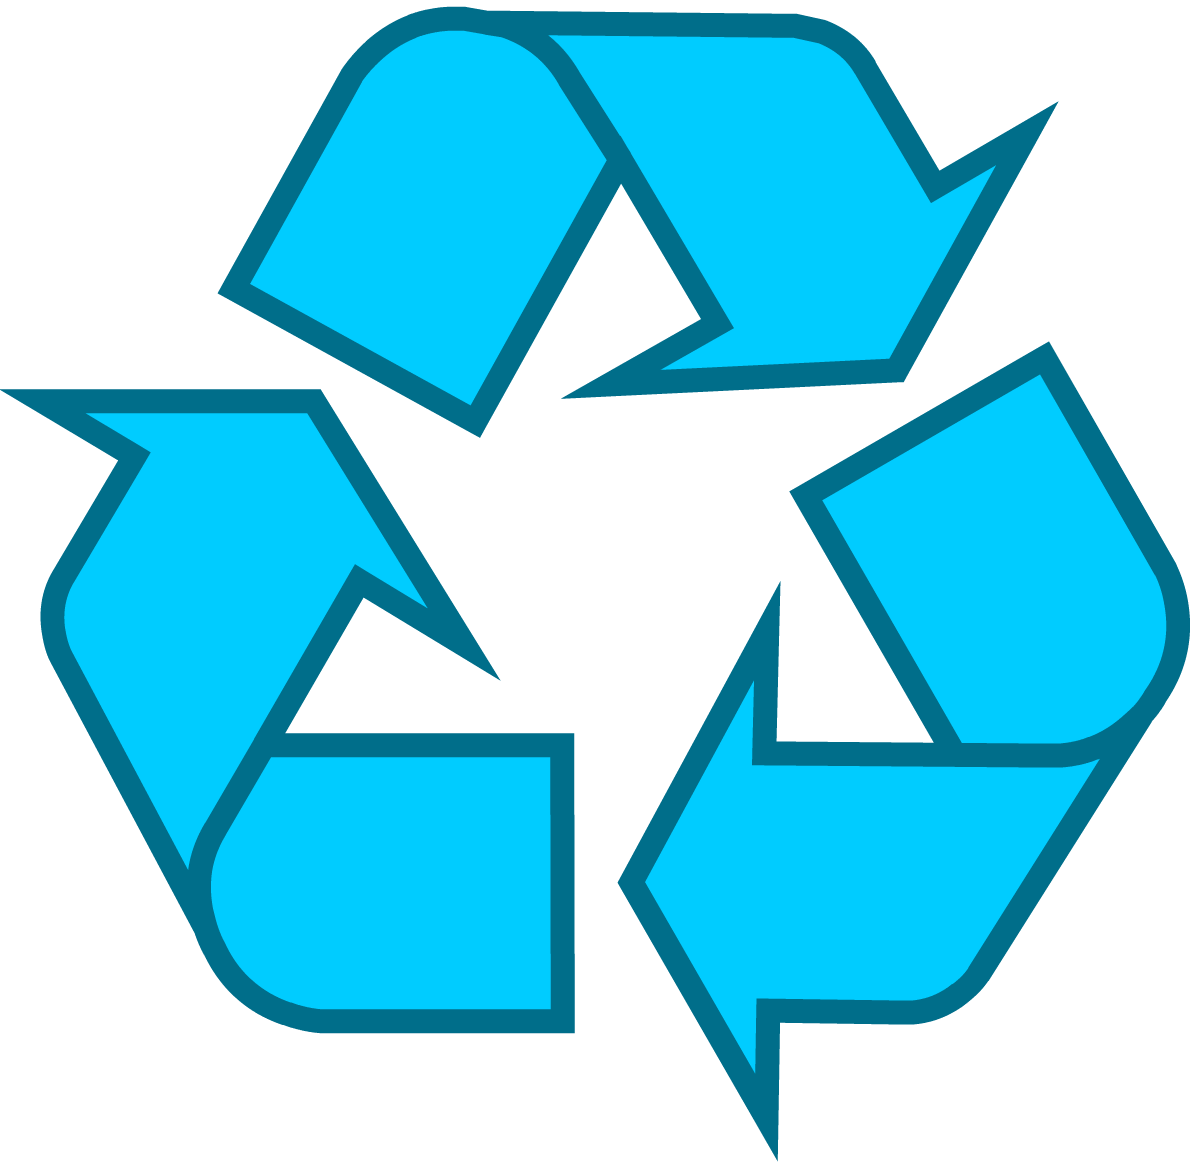 Light blue universal recycling symbol logo sign httpwww one of the most famous symbols on the planet the recycle logo has an interesting history biocorpaavc Gallery